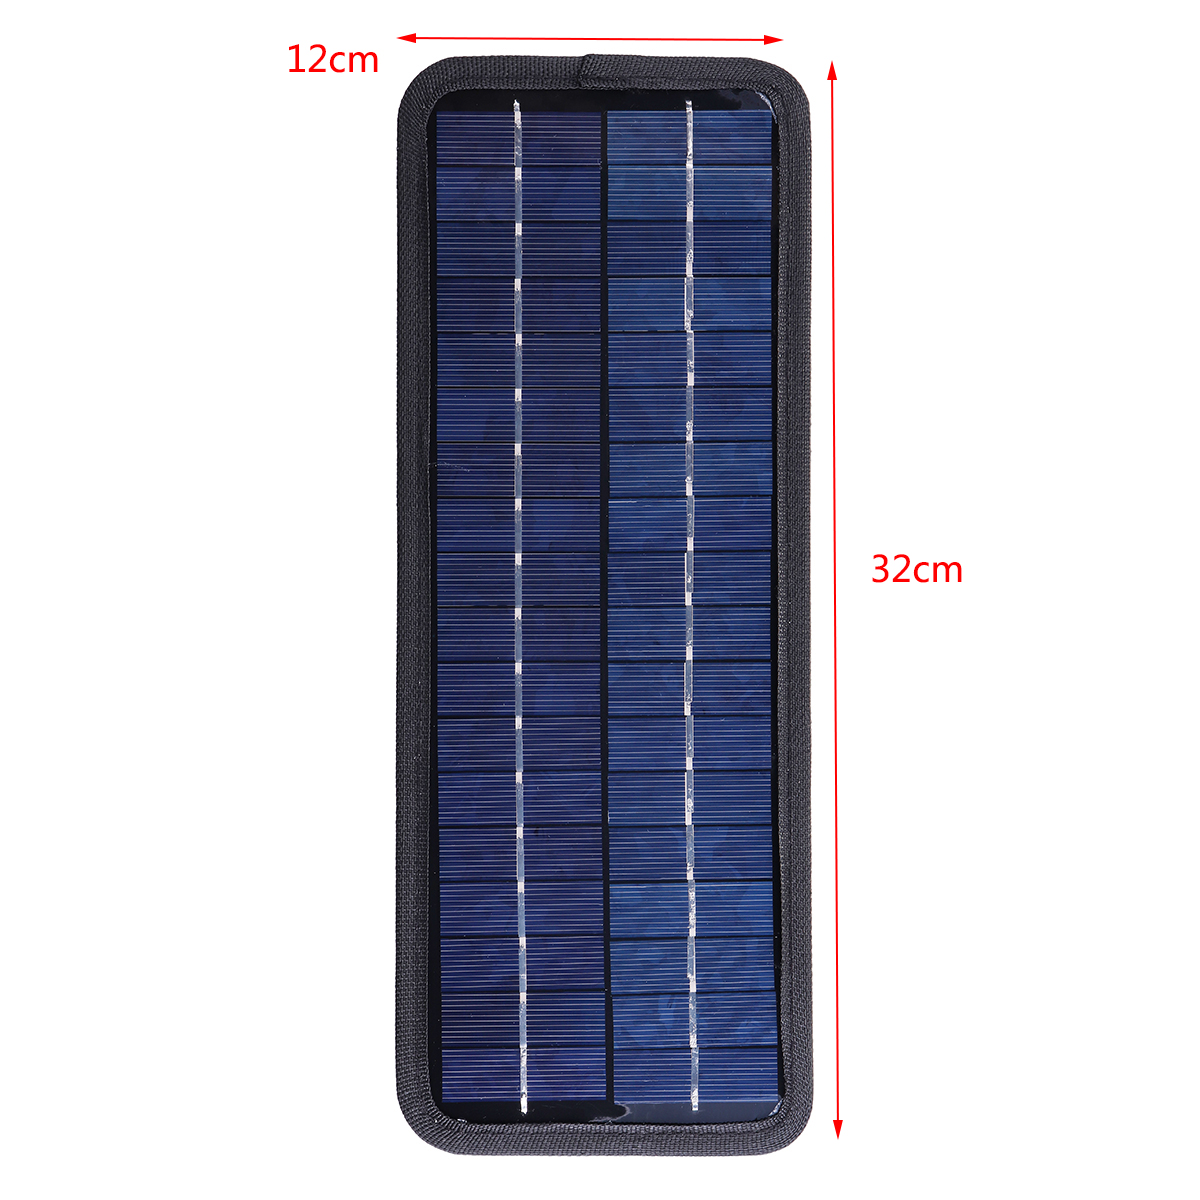 4.5W 12V Solar Panel Trickle Battery Charger System Single Crystal Silicon Waterproof for Boat Auto